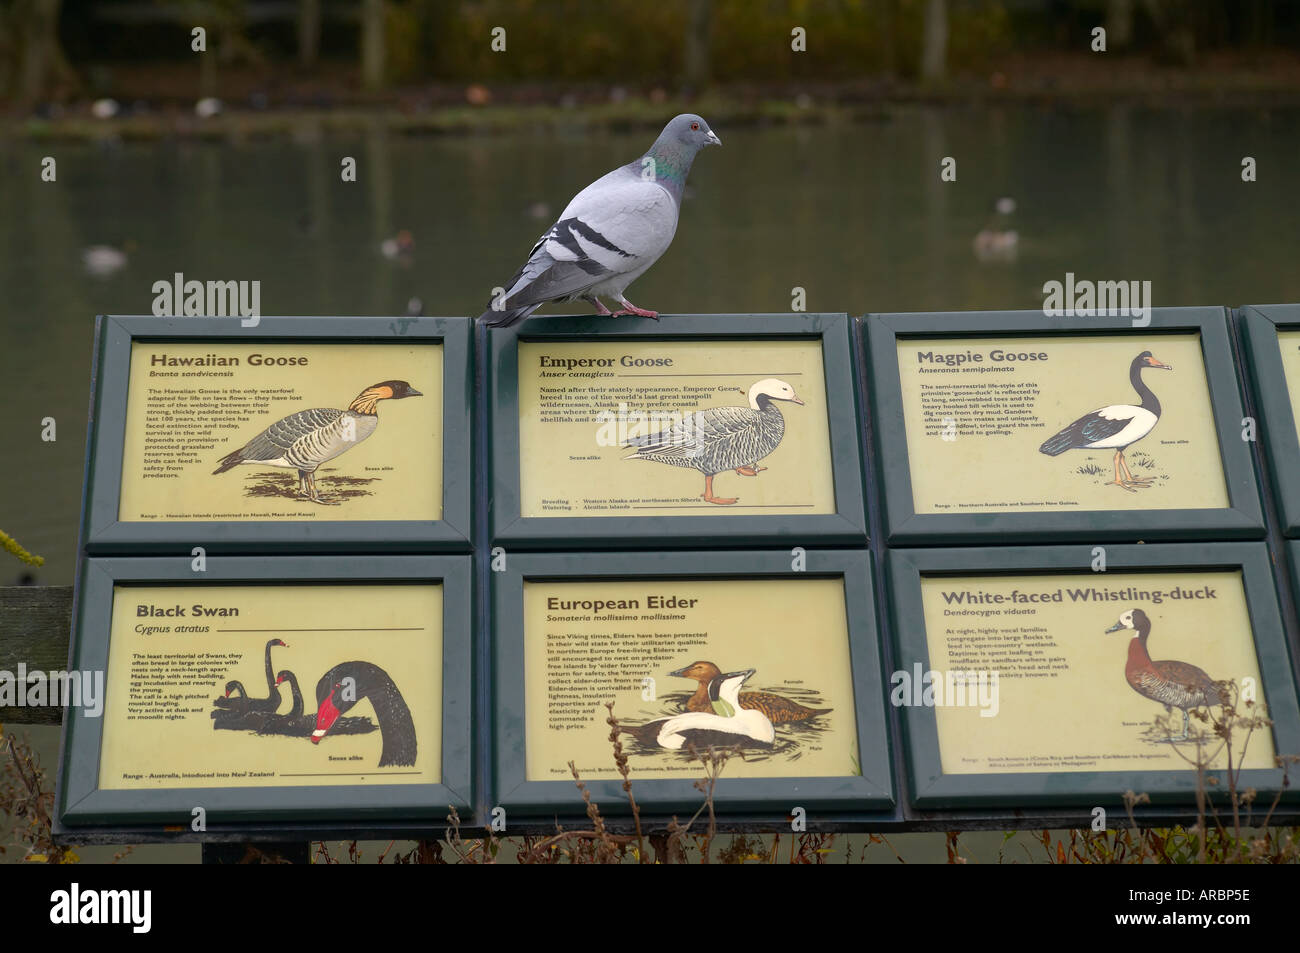 Humorous scene with pigeon Columba livia possibly having an identity crisis - Stock Image